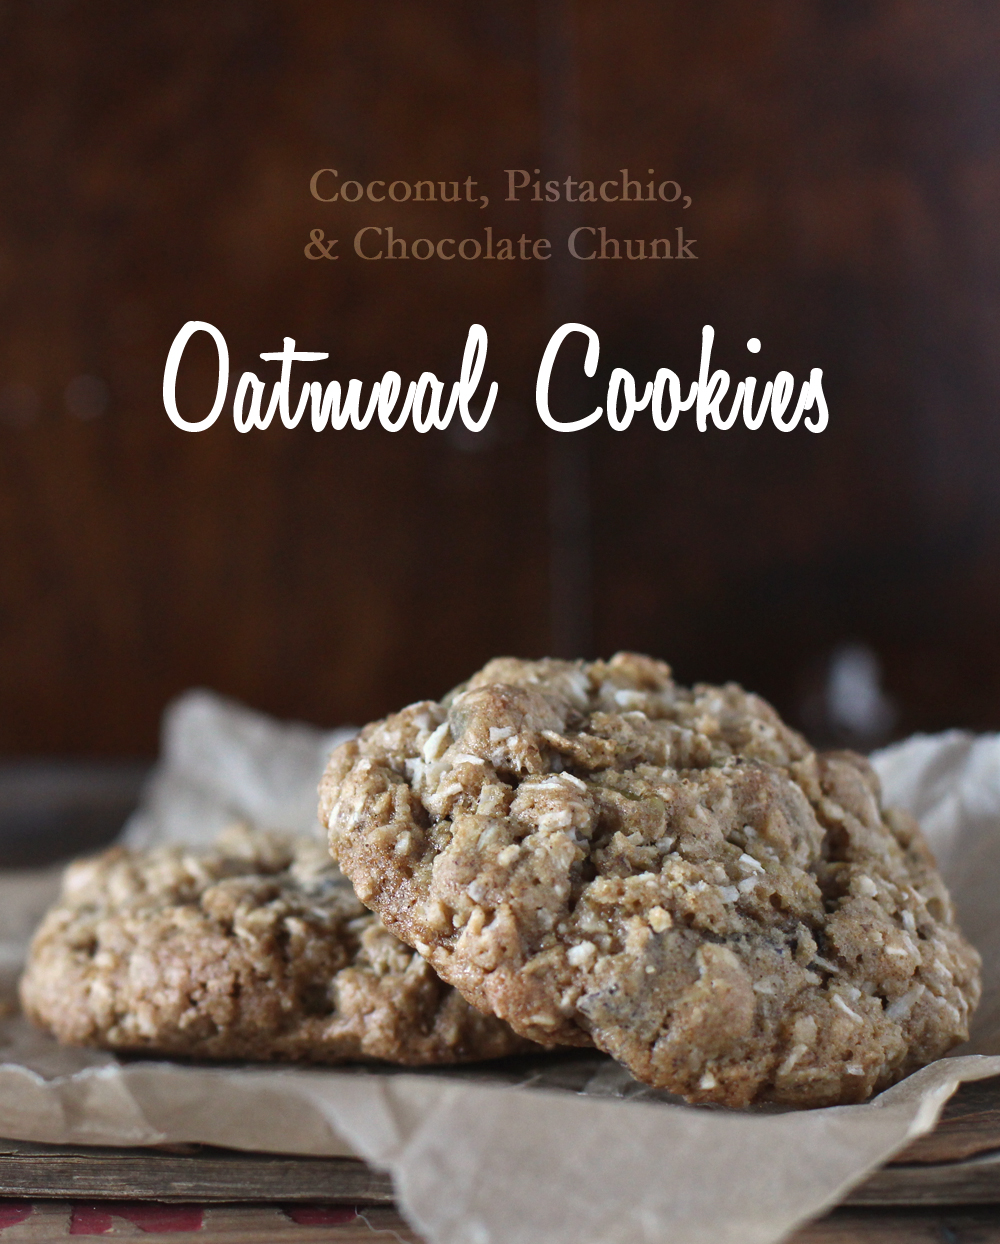 Coconut, Pistachio & Chocolate Chunk Oatmeal Cookies